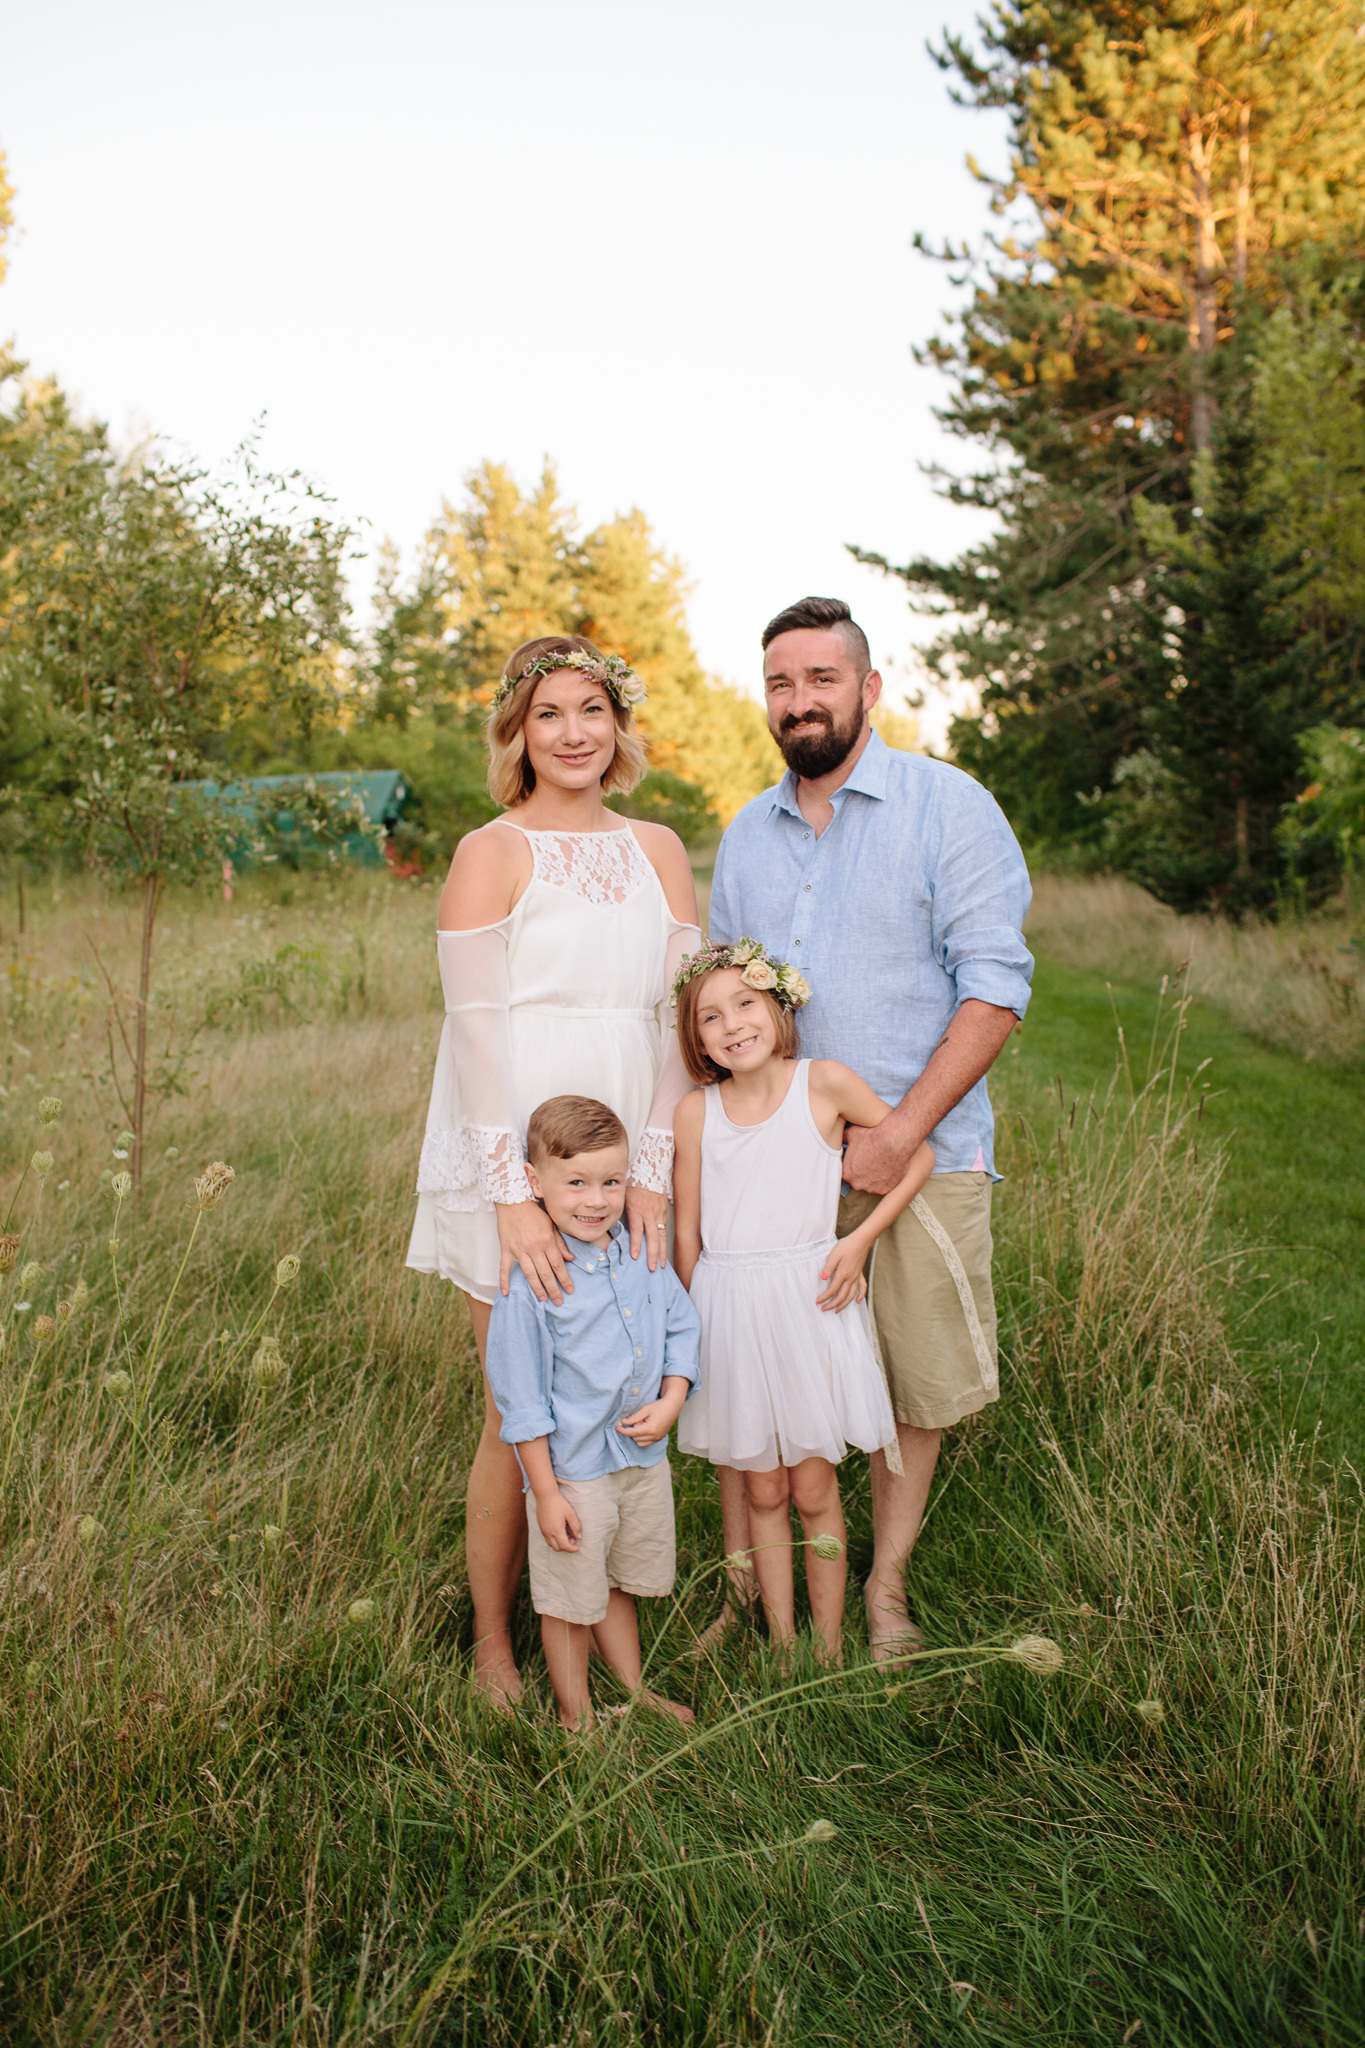 family lifestyle portrait in field